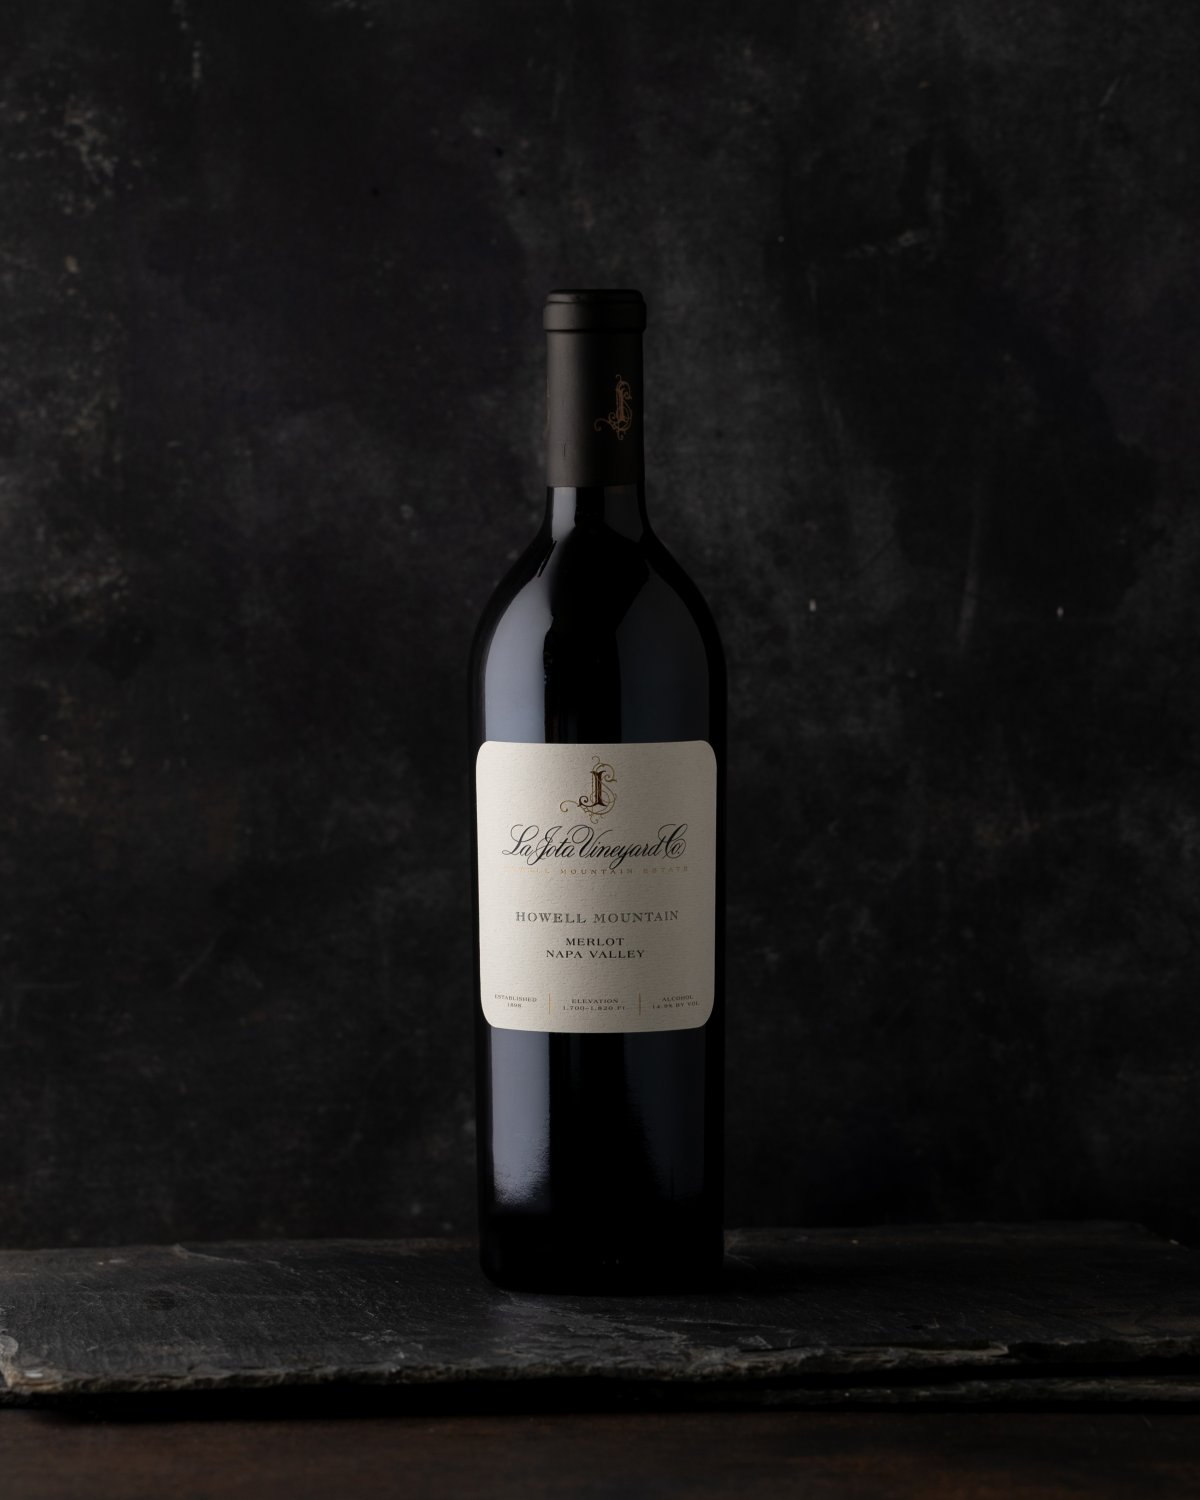 2010 La Jota Howell Mountain Merlot